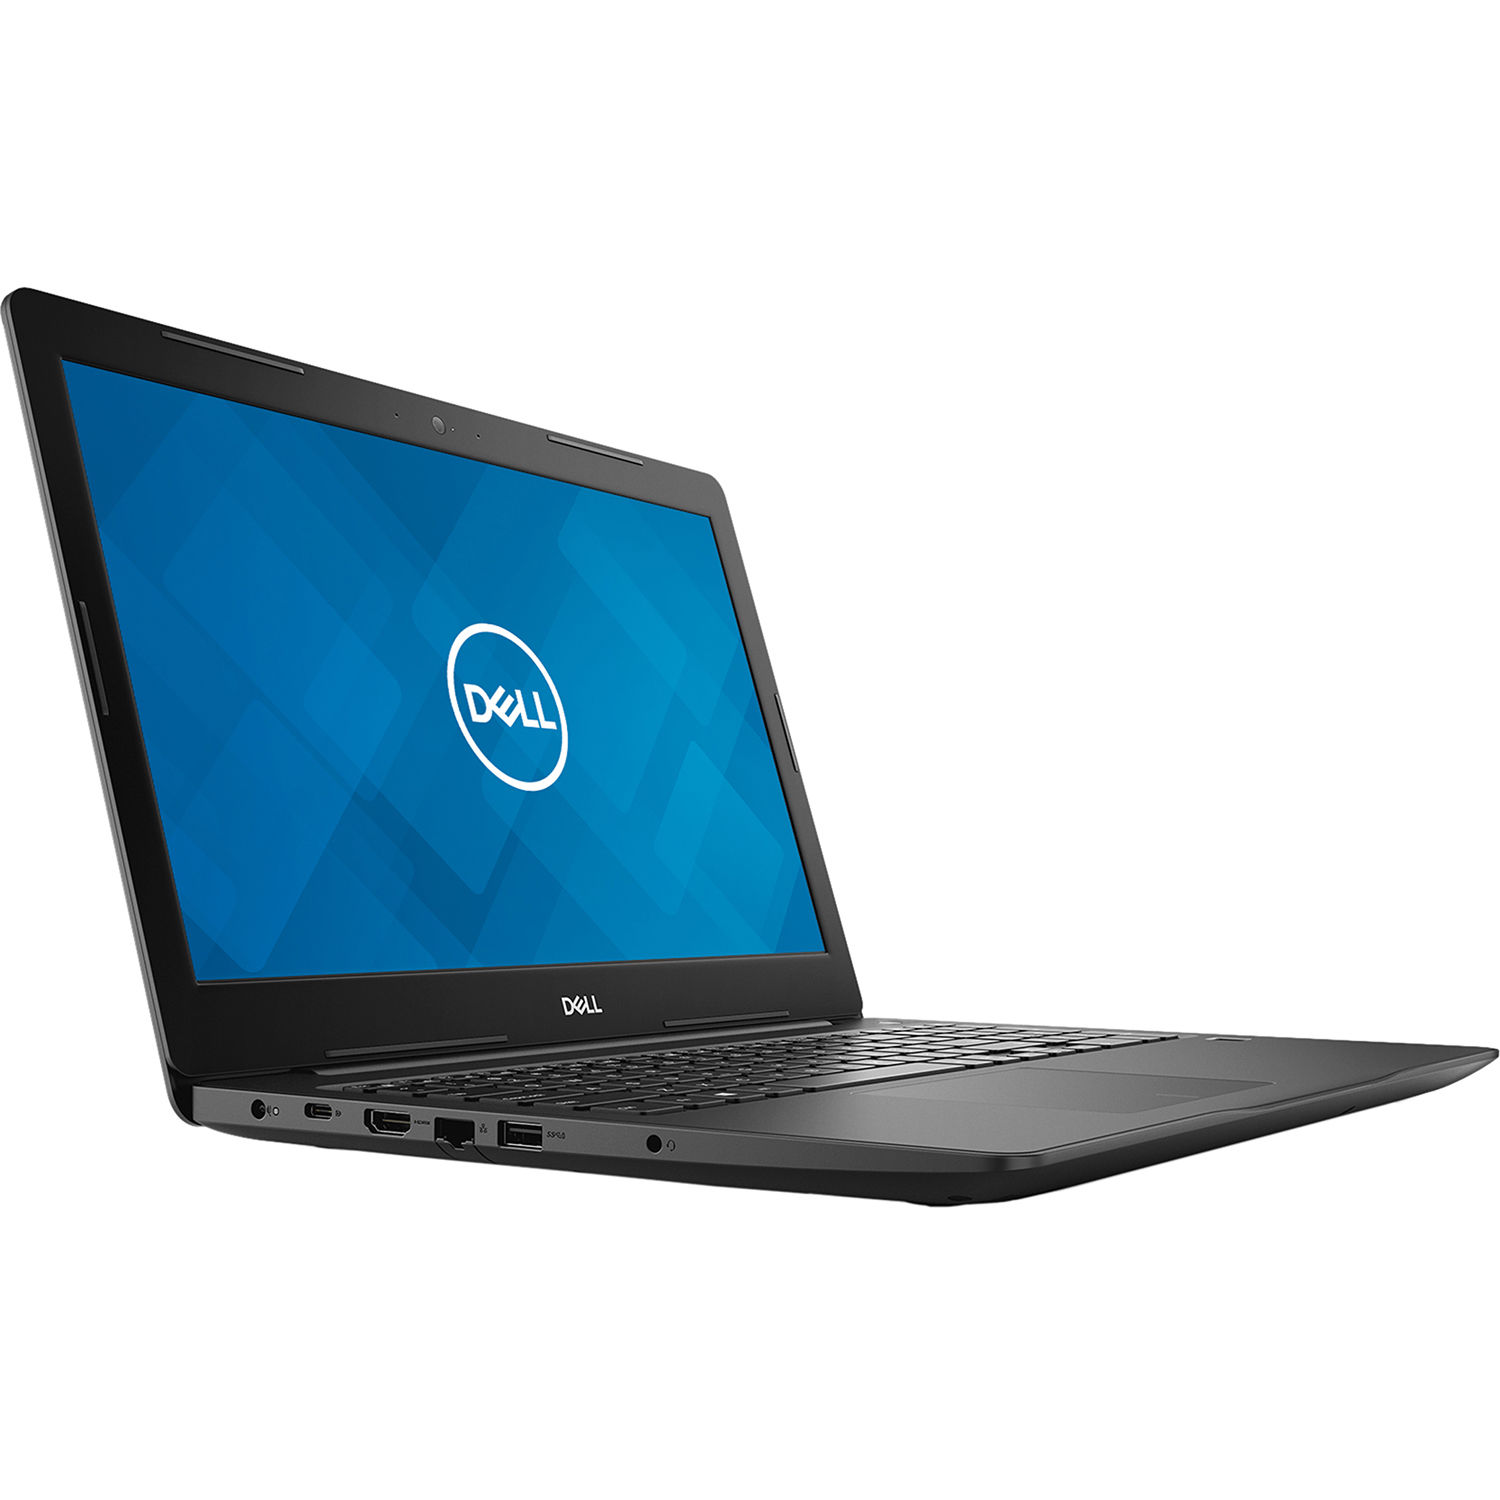 Shop for Dell Desktop Computers in Computers. Buy products such as HP Desktop Computer Bundle Windows 10 Intel GHz Processor 4GB RAM GB Hard Drive DVD-RW Wifi with a 17